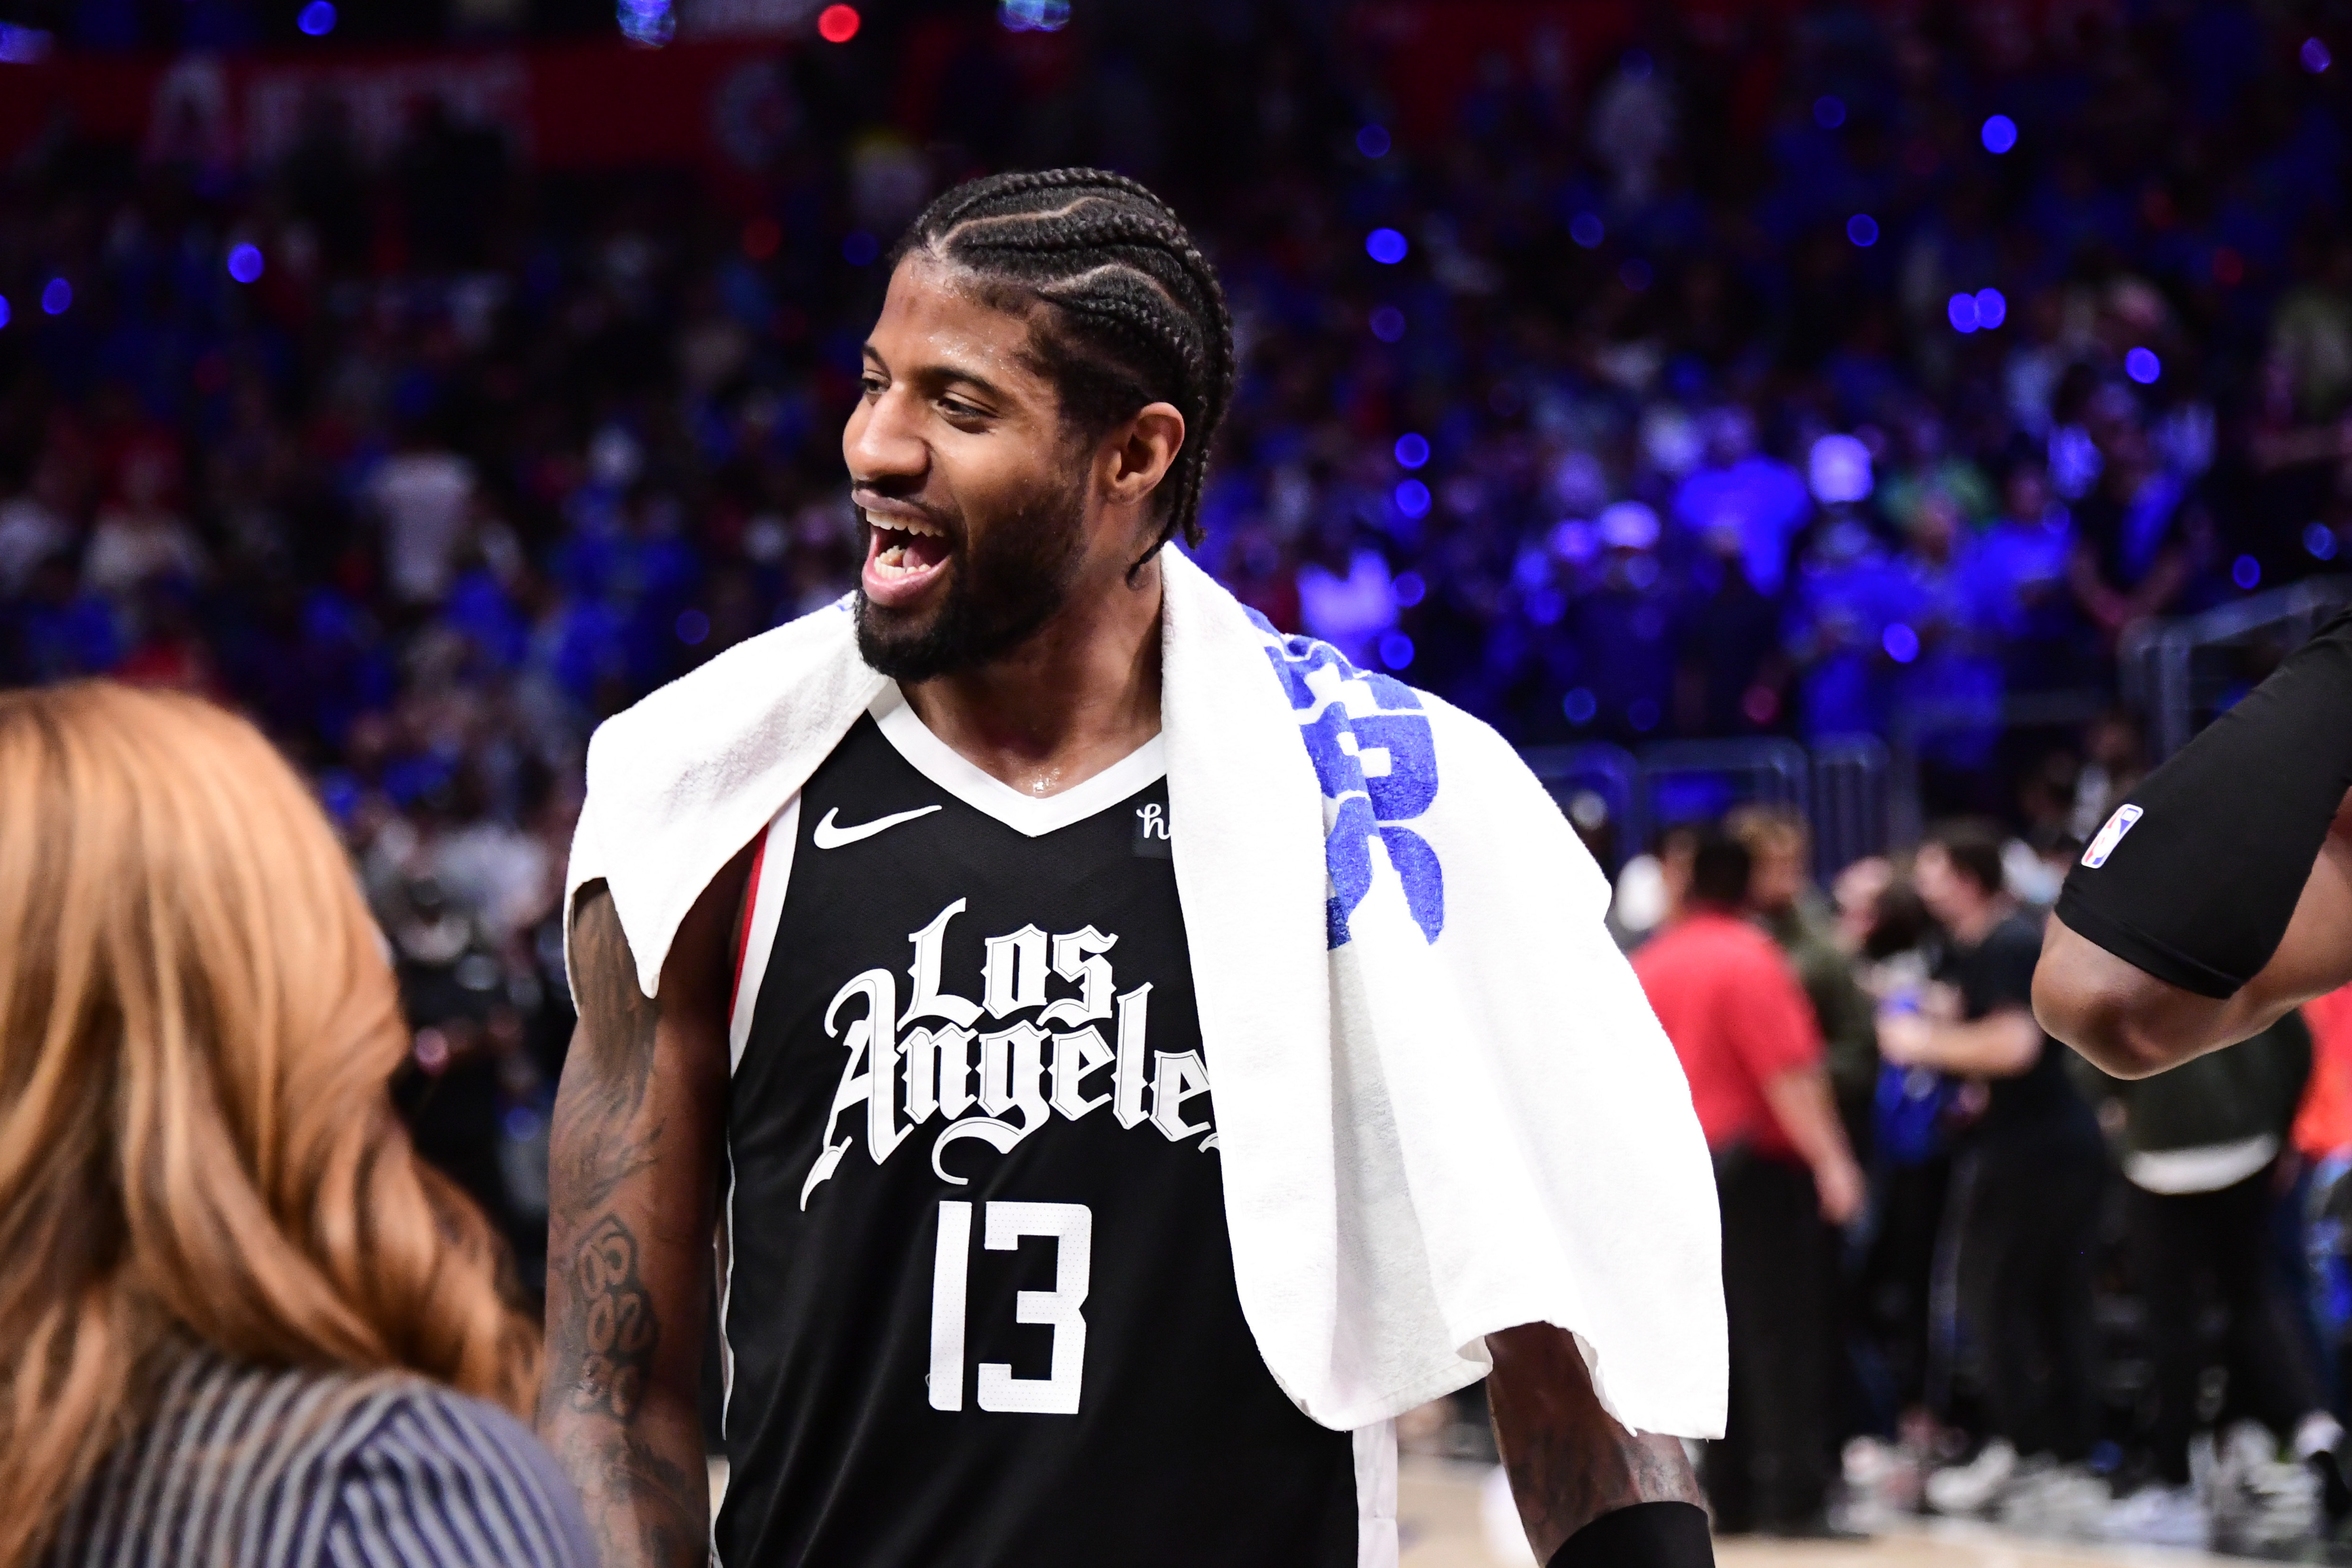 Paul George of the LA Clippers smiles after the game against the Utah Jazz during Round 2, Game 6 of the 2021 NBA Playoffs on June 18, 2021 at STAPLES Center in Los Angeles, California.